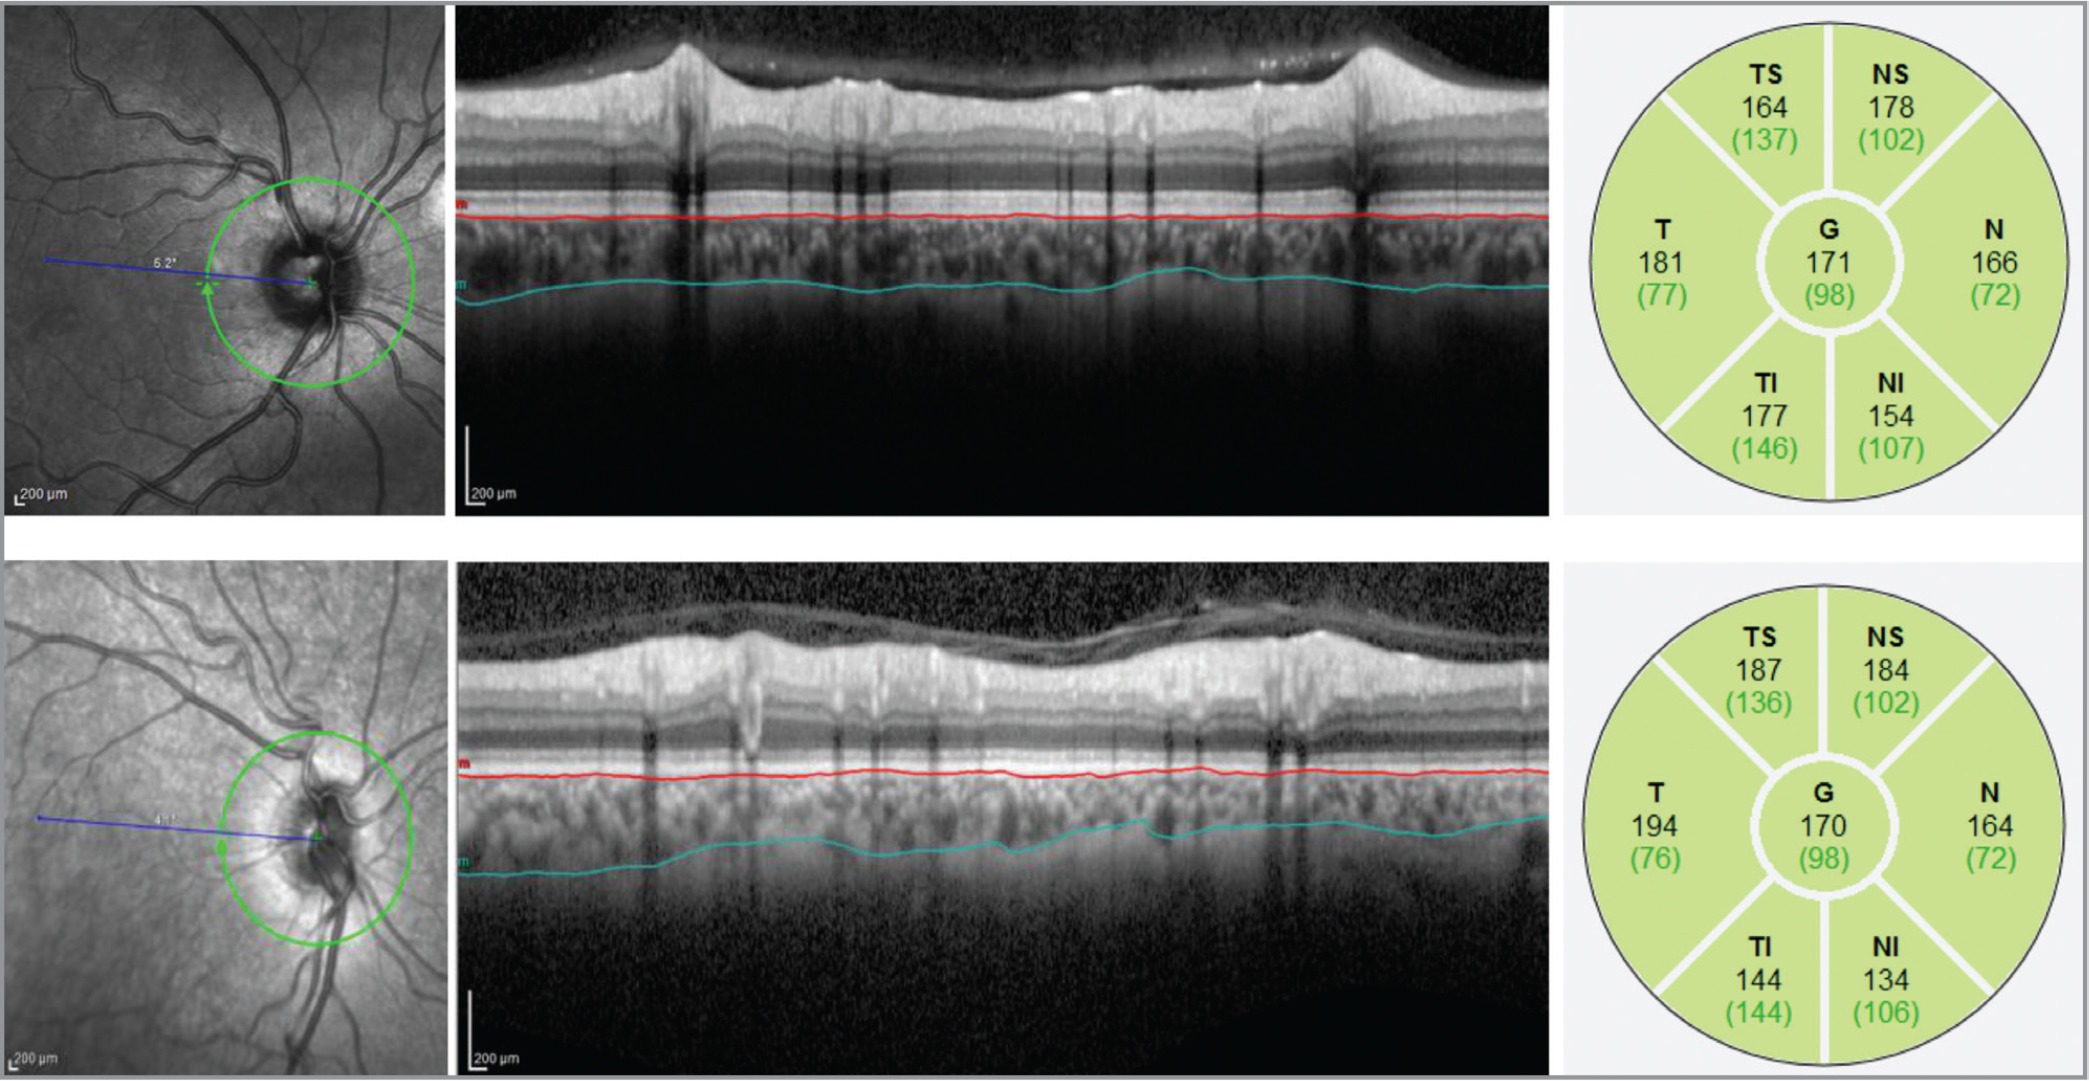 Choroidal thickness measurement using the imaging and analysis tool of Heidelberg Engineering spectral-domain optical coherence tomography (SD-OCT). The top panel displays an image and choroidal thickness profile of a 27-year-old patient with keratoconus, and the bottom panel presents the corresponding findings of a 26-year-old control. In the left picture, the location of the peripapillary scan is exposed in an infrared image. The middle picture illustrates the peripapillary SD-OCT scan displayed with the two borderlines of the choroidea, and the right picture presents the calculated thickness for each segment of peripapillary choroidal thickness. The numbers in parentheses and colors of each segment display the standard values for the peripapillary retinal nerve fiber layer thickness, and not for the peripapillary choroidea thickness. TS = temporal superior; T = temporal; TI = temporal inferior; NS = nasal superior; N = nasal; NI = nasal inferior; G = global.